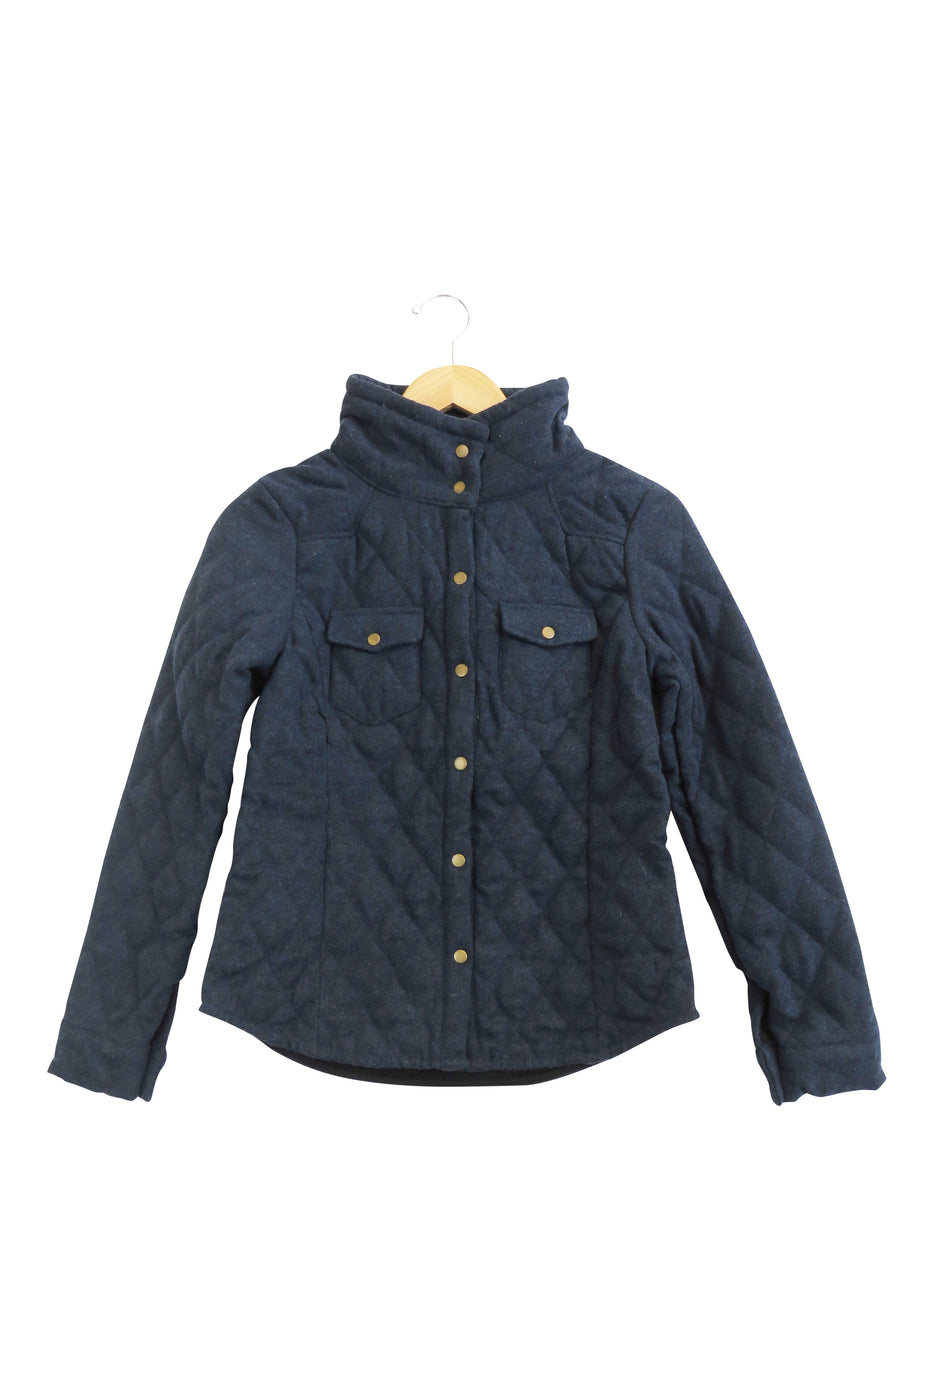 navy-quilted-jacket-button-up